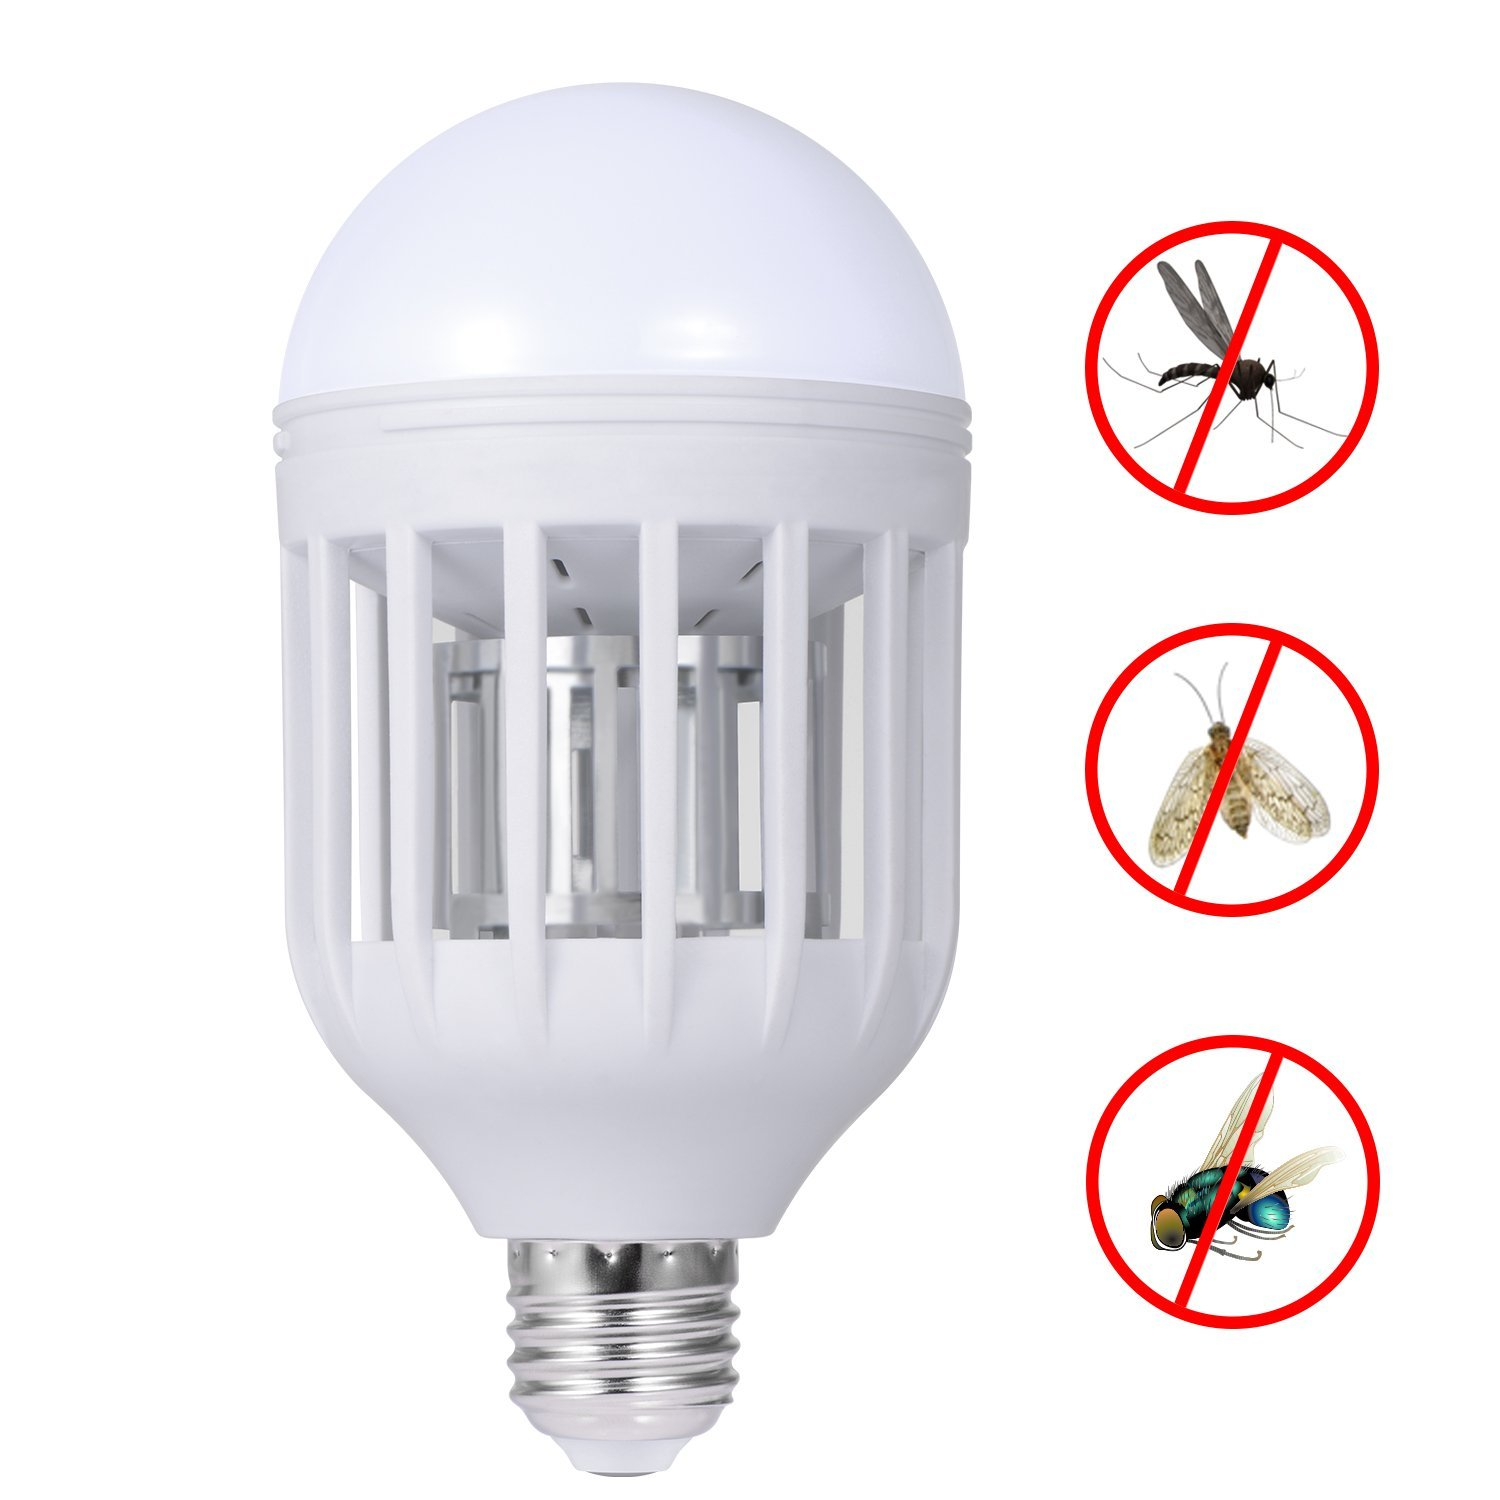 12W E27 led bulb fly mosquito killer built in insect trap light lamp socket use for indoor home garden backyard AC110V/220V socket electric mini mosquito lamp led insect mosquito repeller killing fly bug insect night housefly freeshipping